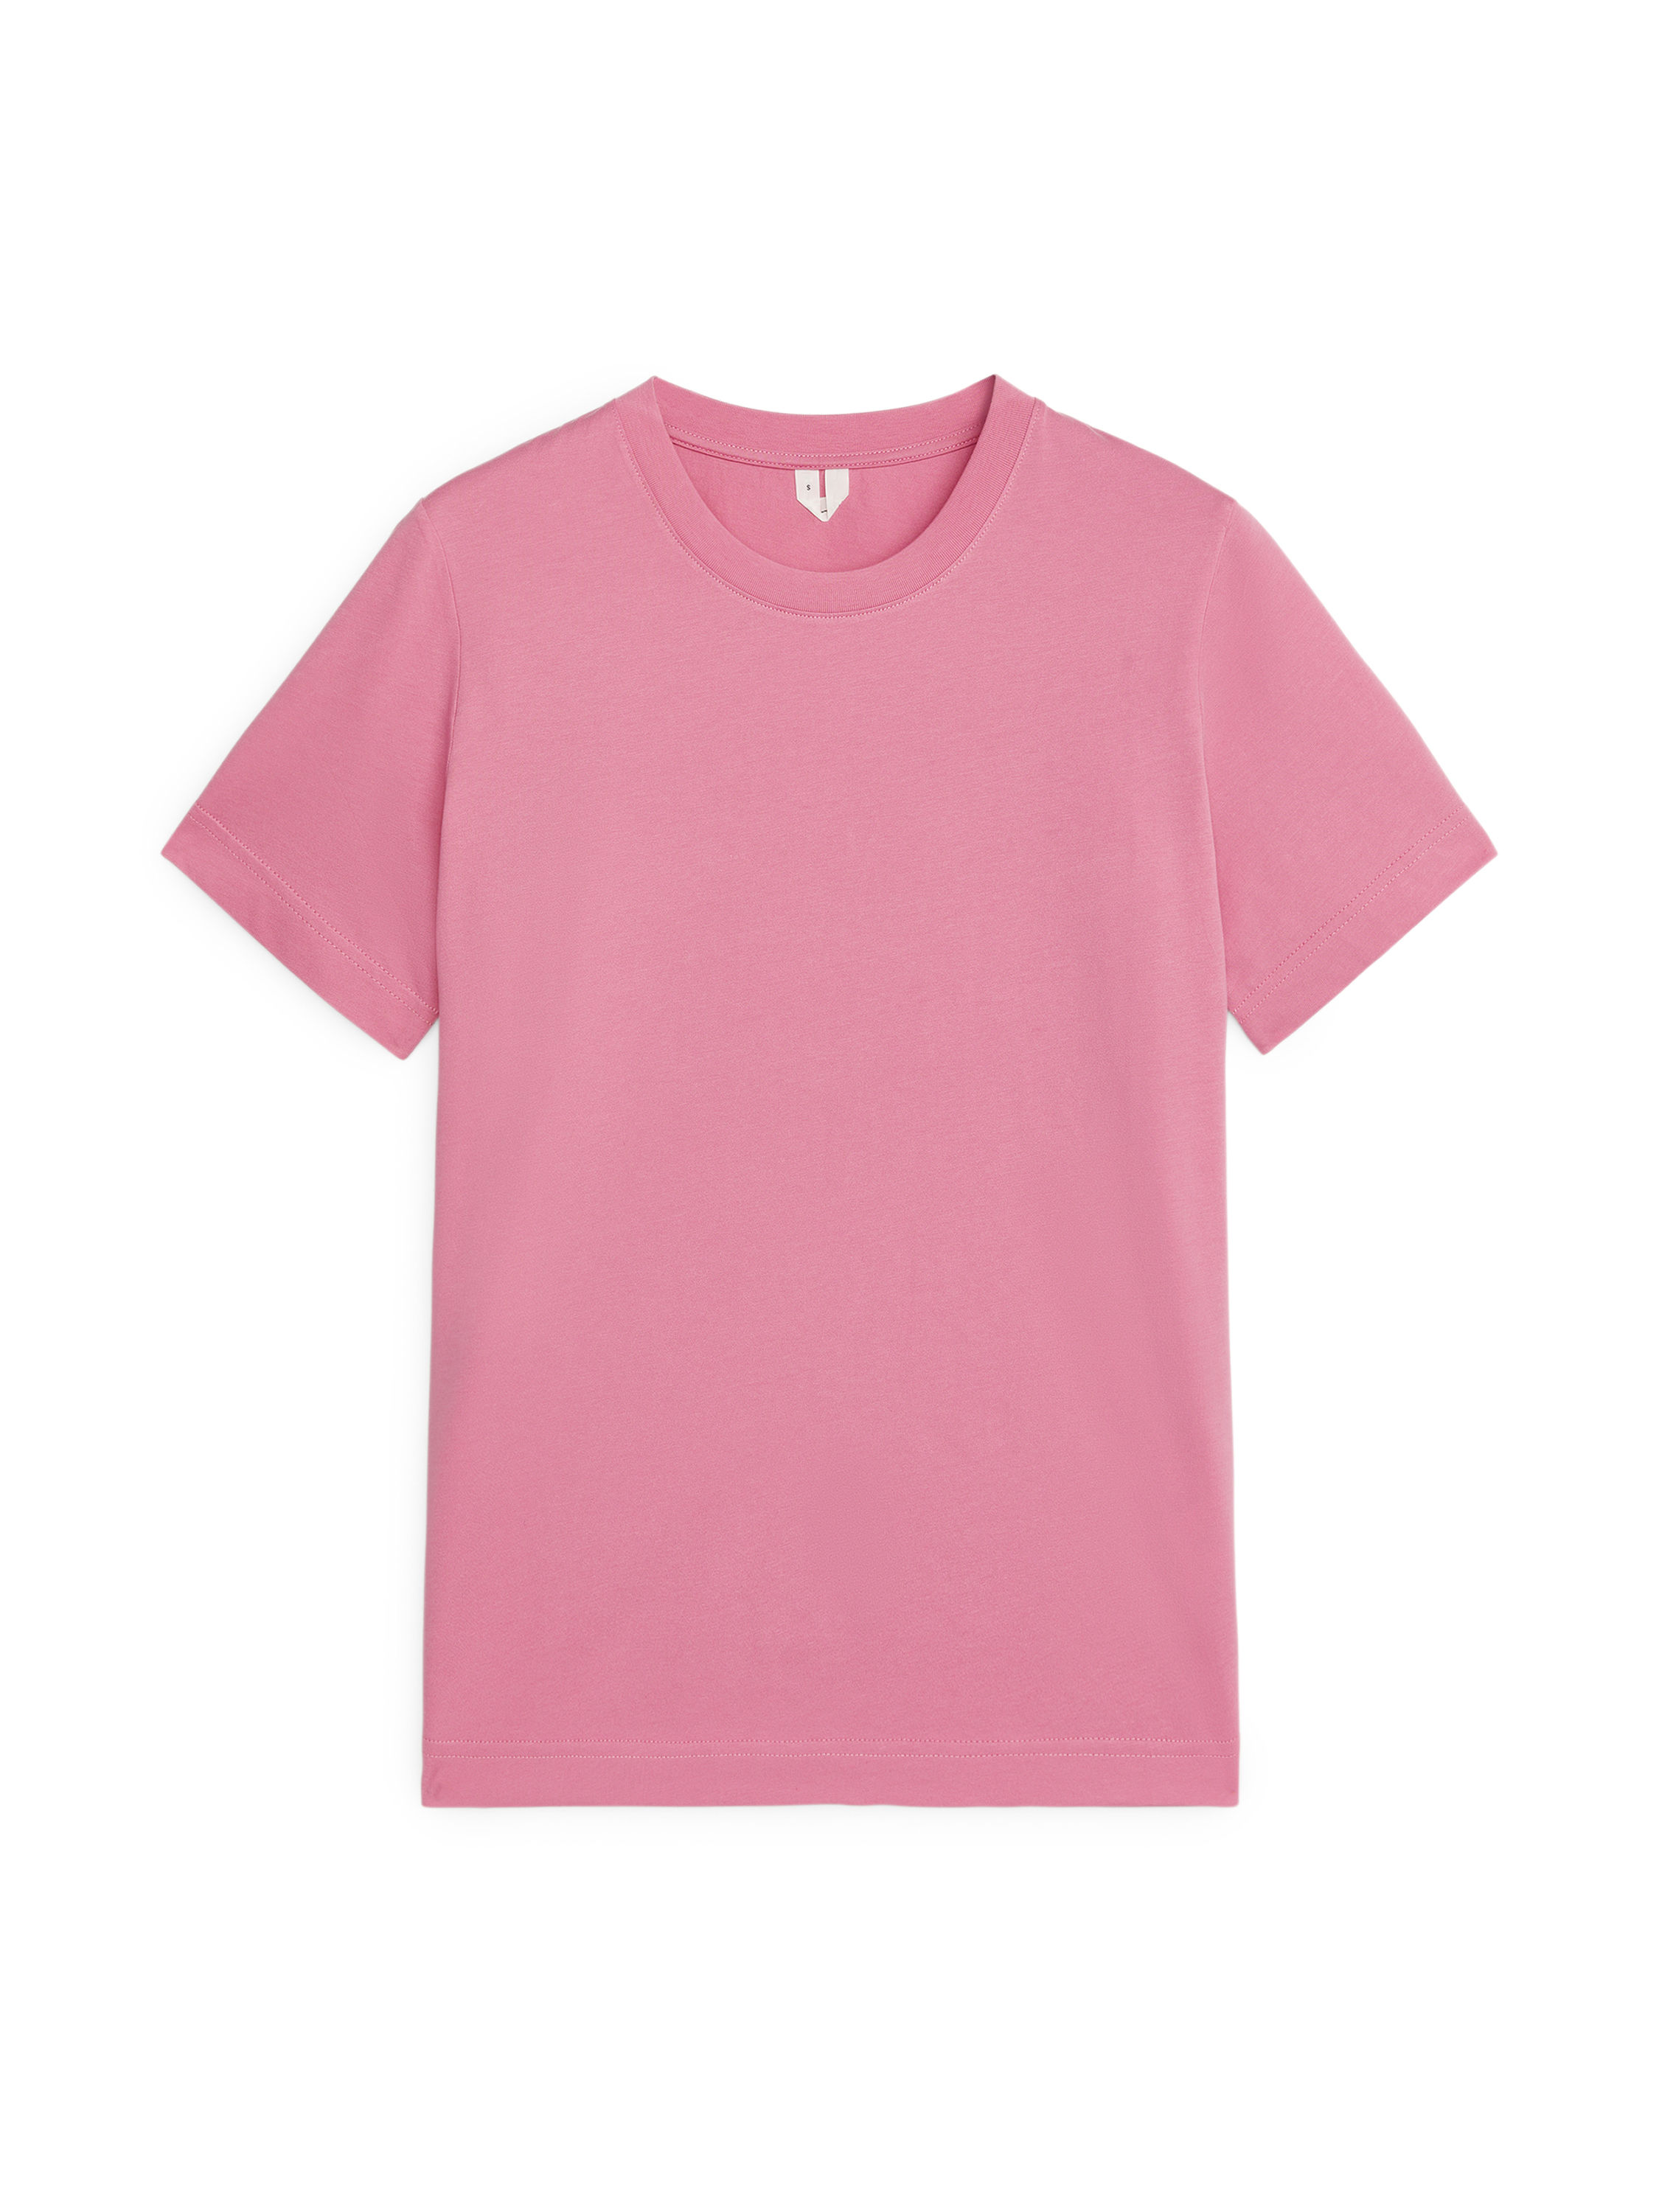 Fabric Swatch image of Arket crew-neck t-shirt in pink